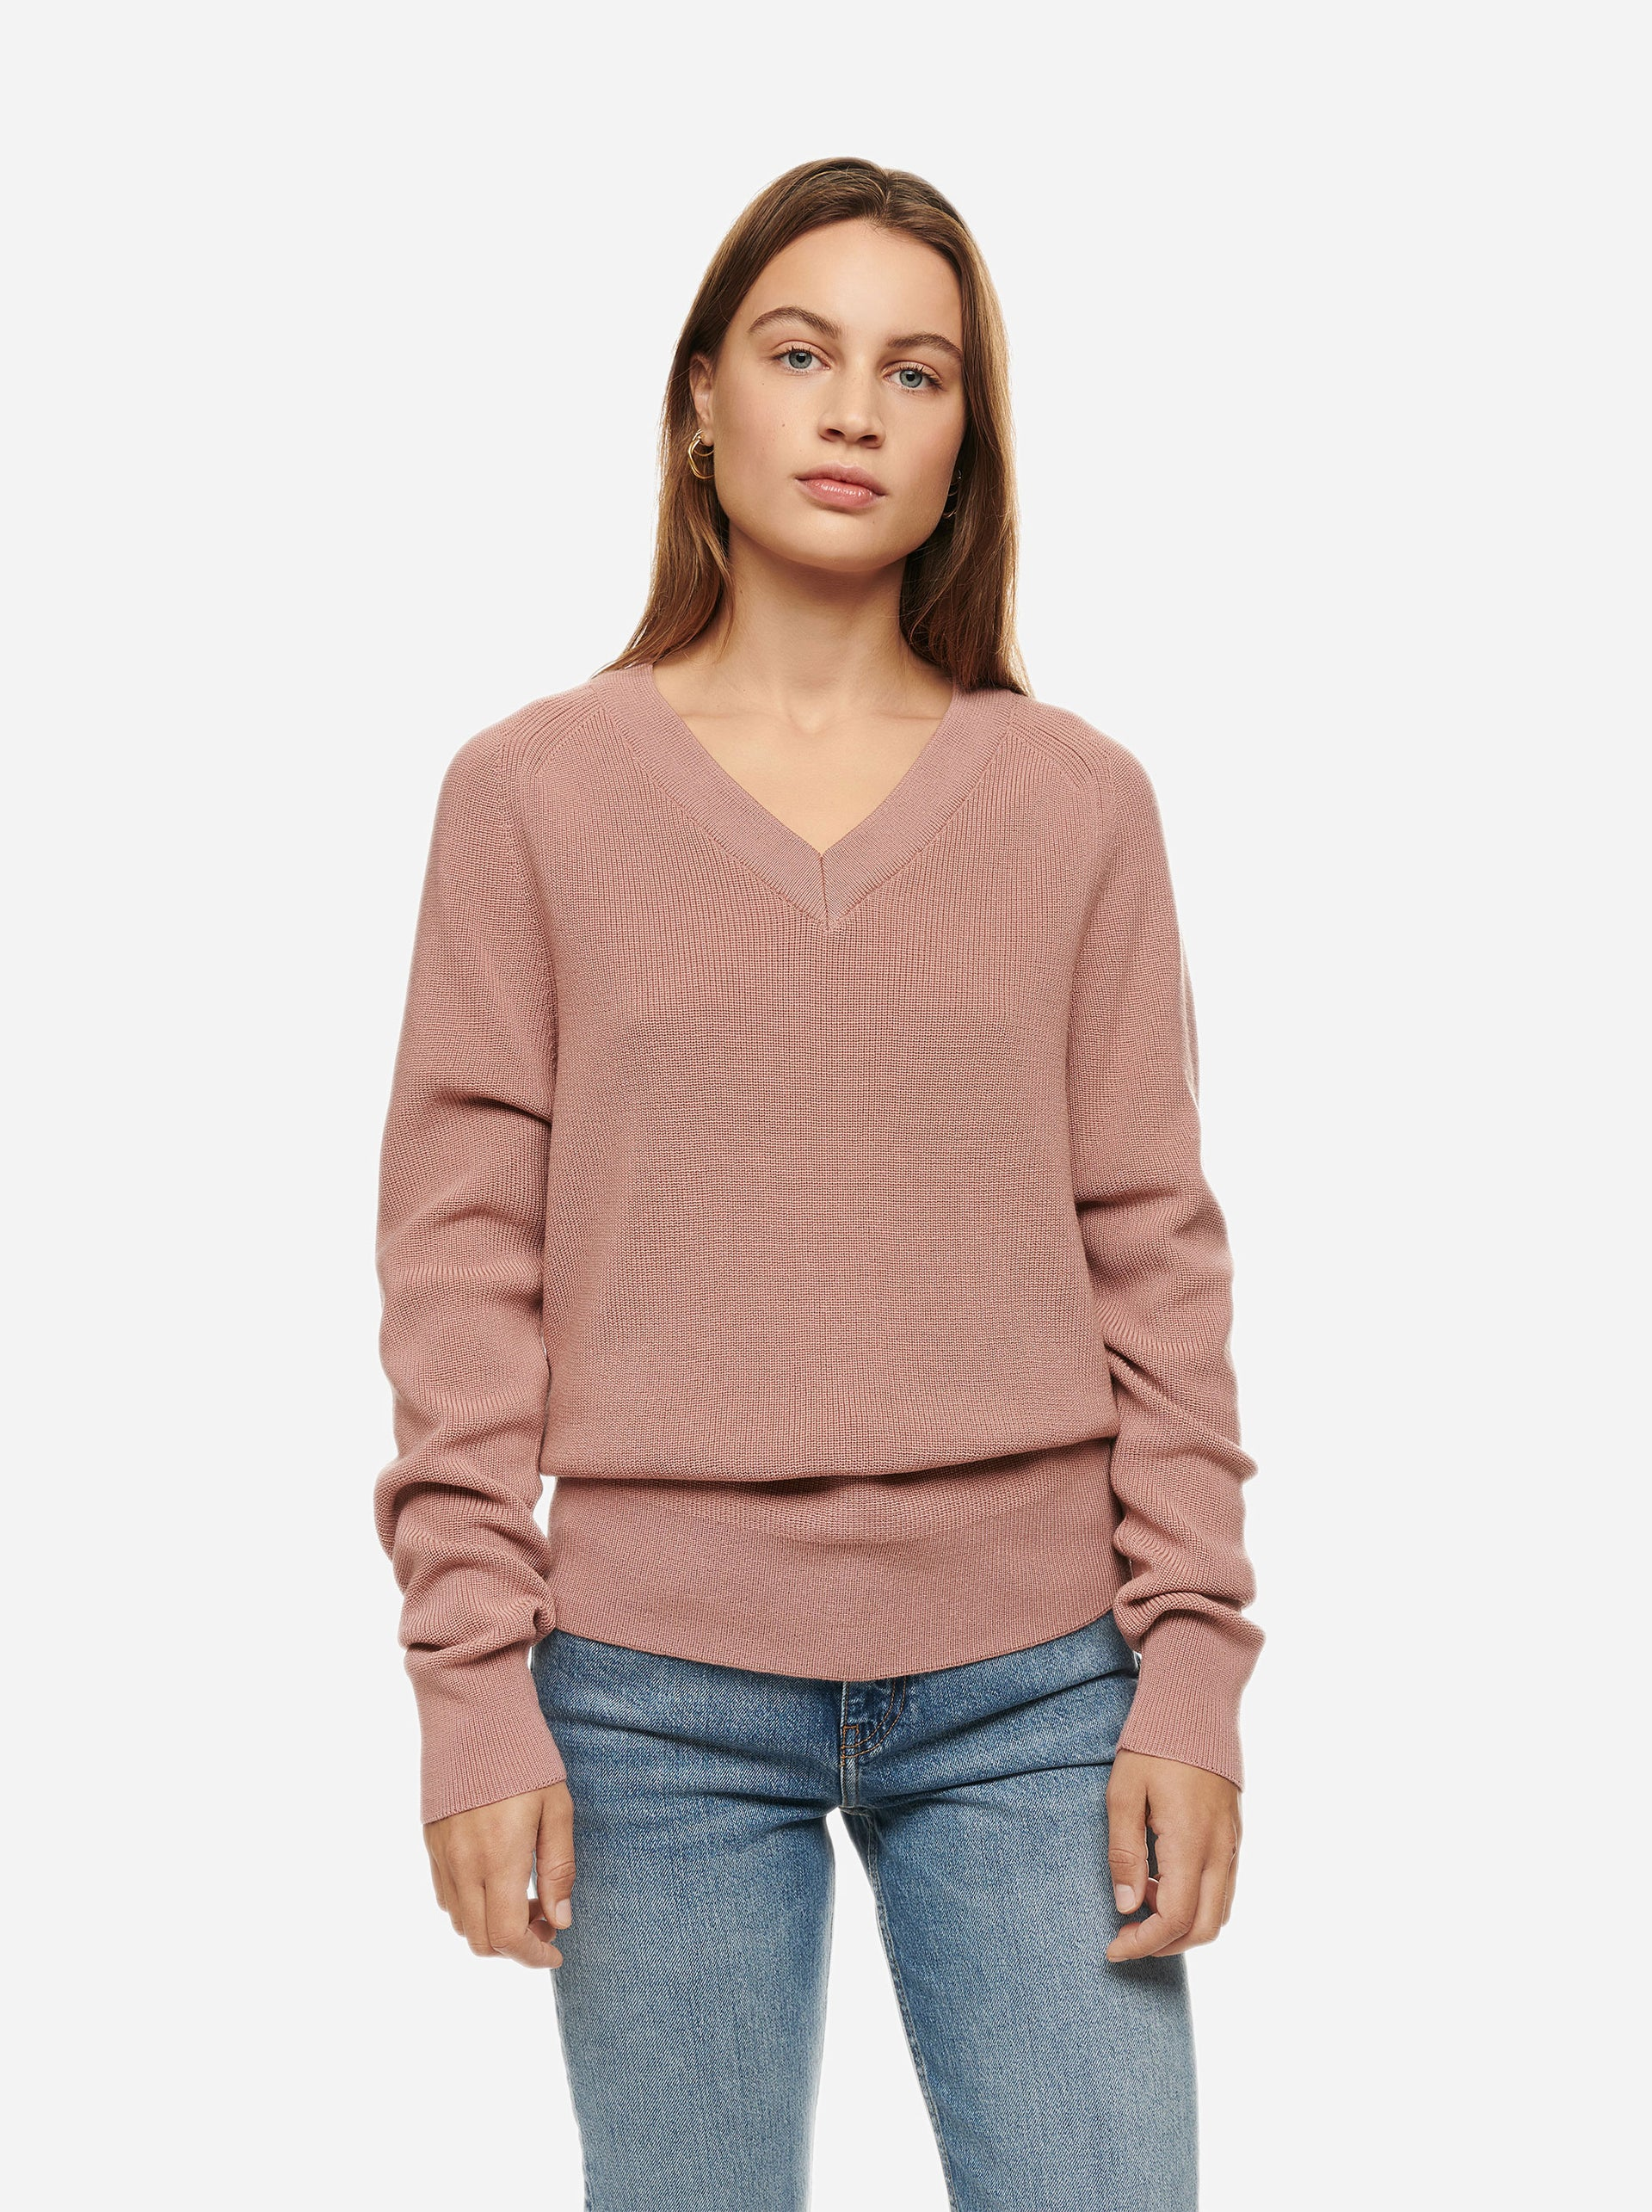 The V-Neck Sweater - Pink